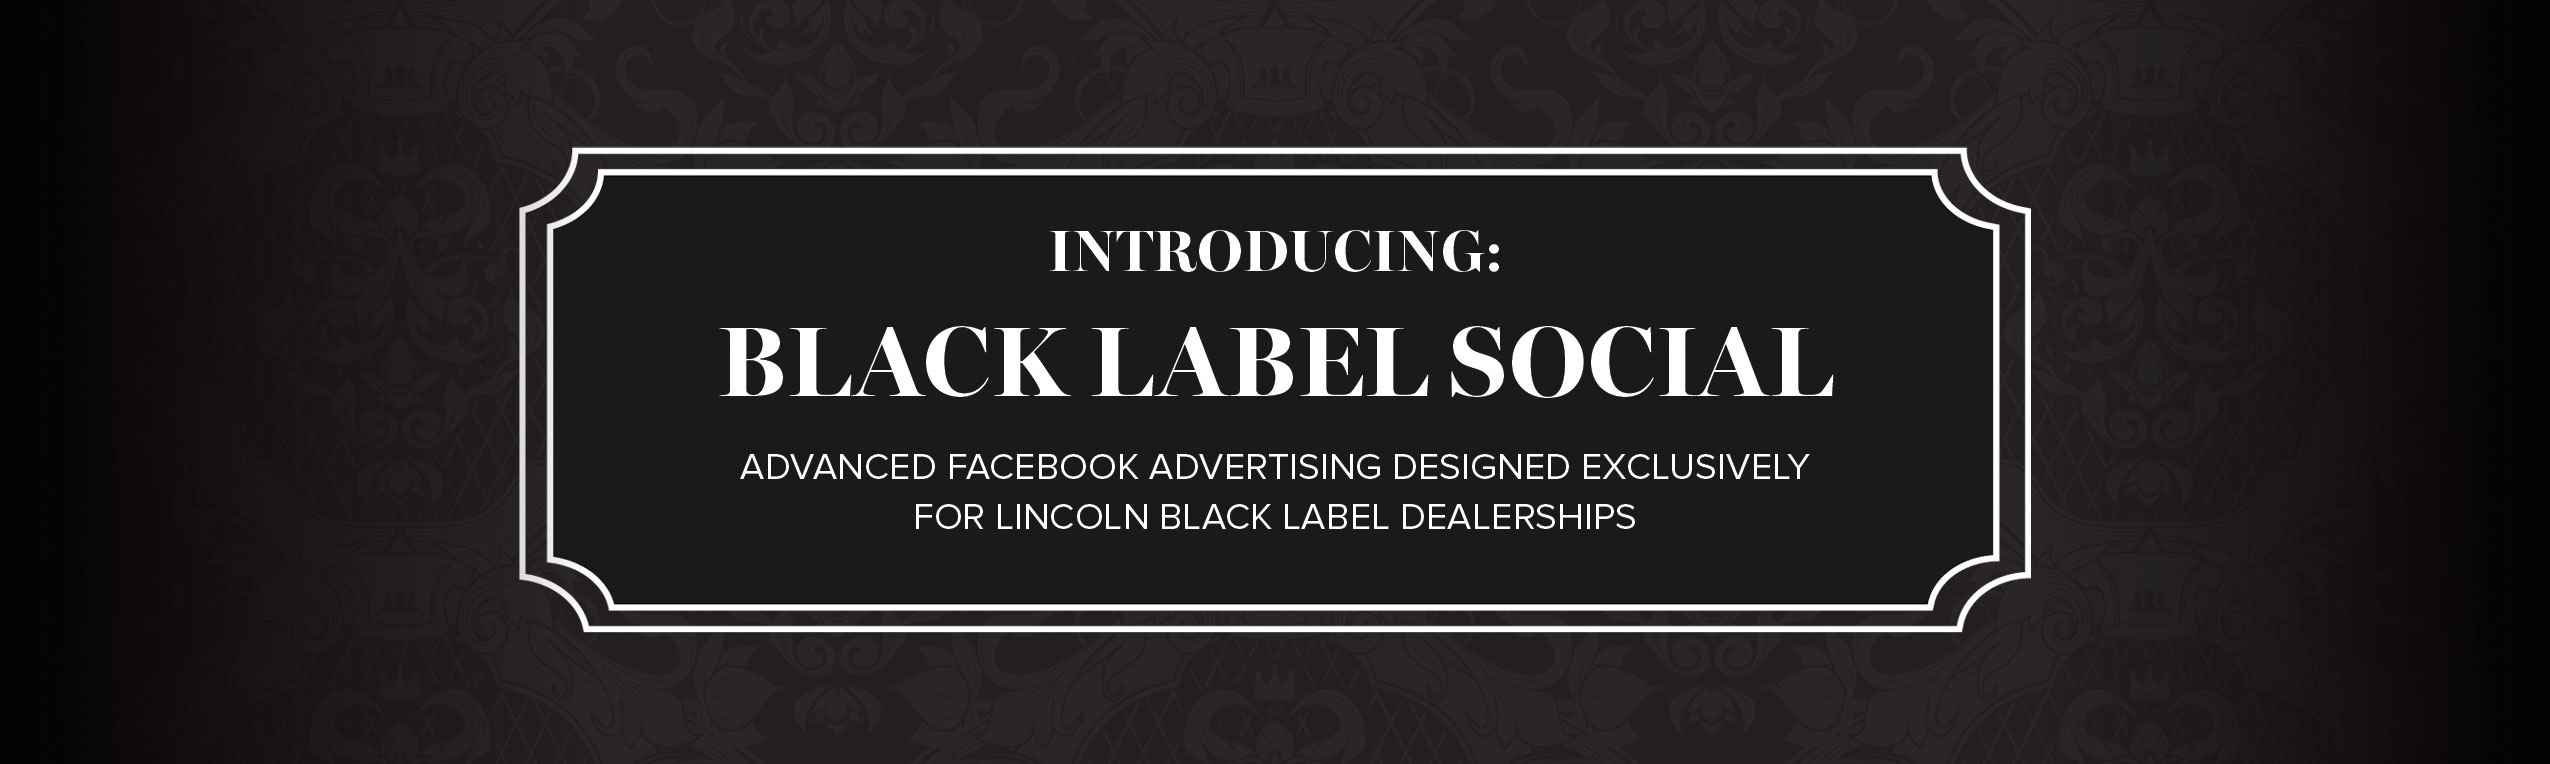 Black Label Social